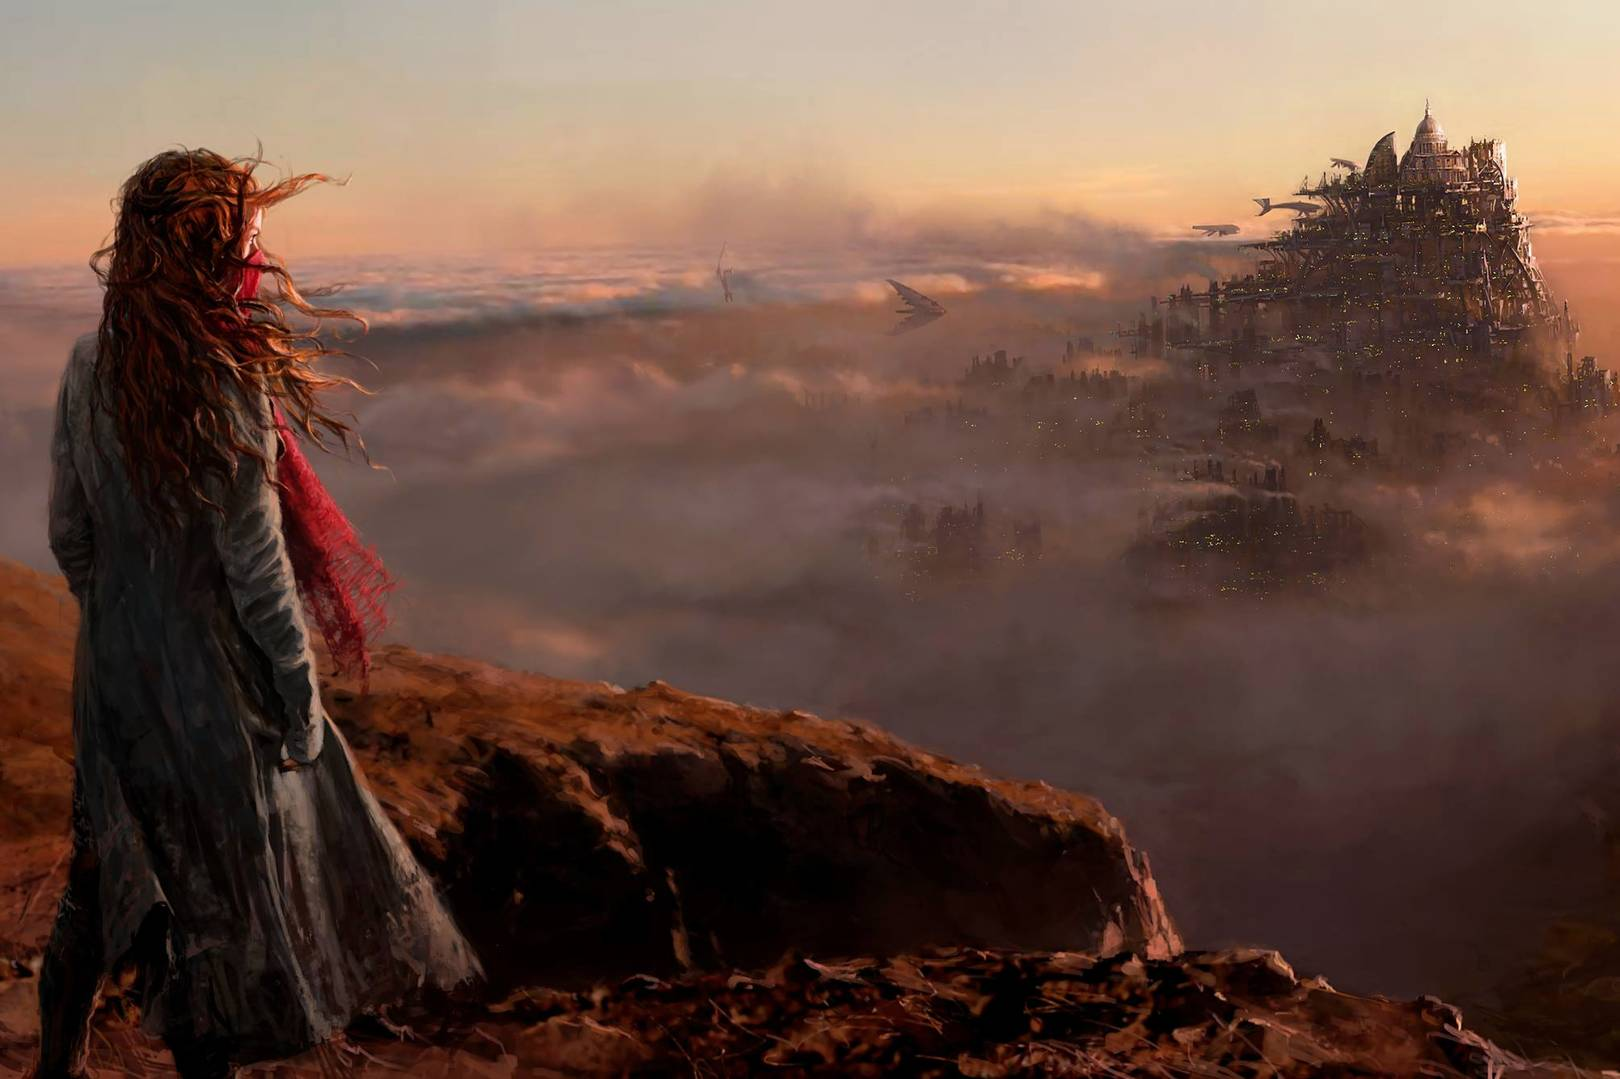 In Peter Jackson's Mortal Engines, London is a killer city